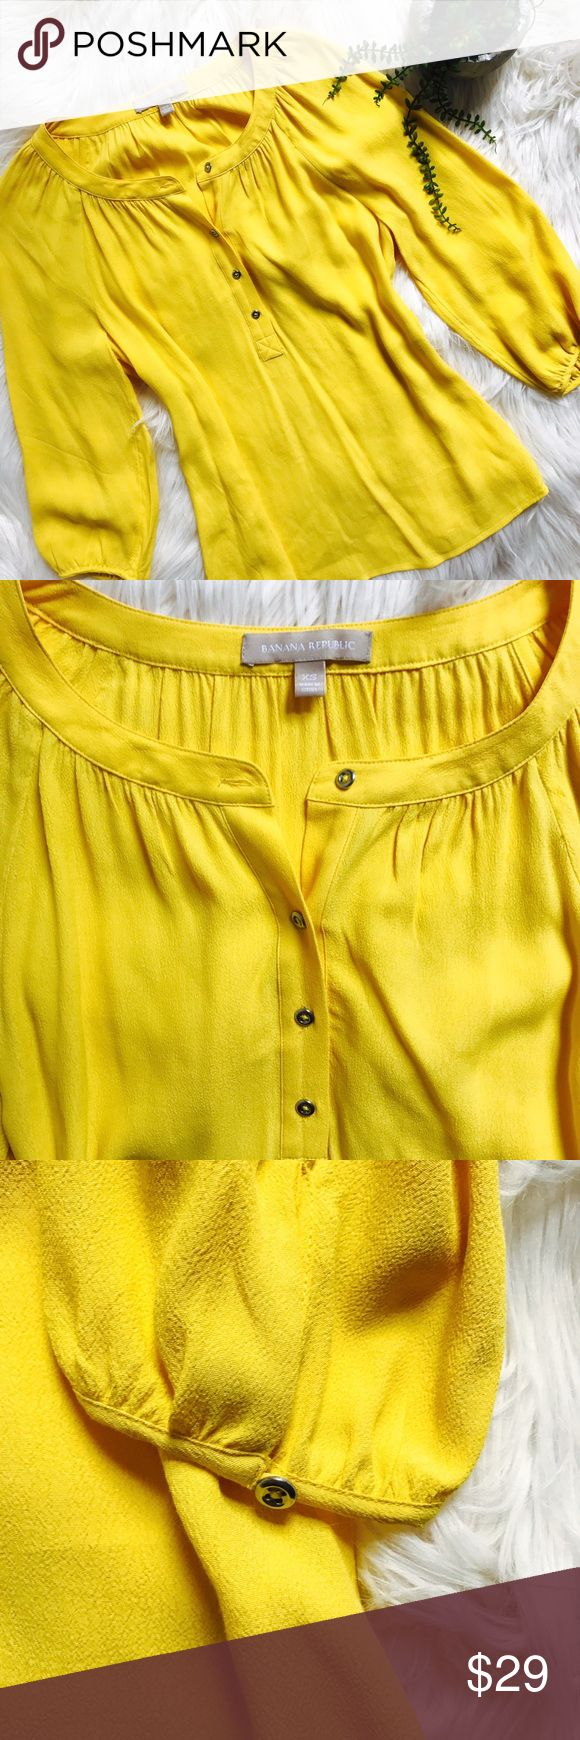 "[Banana Republic] Bright Yellow Top with Buttons This bright yellow loose, flowy top is in excellent, like new condition. It is a perfect addition to bright your wardrobe for spring! Selling because it does not fit me. MEASUREMENTS: chest (laying flat) 19.5"", length 24"" Banana Republic Tops Blouses"